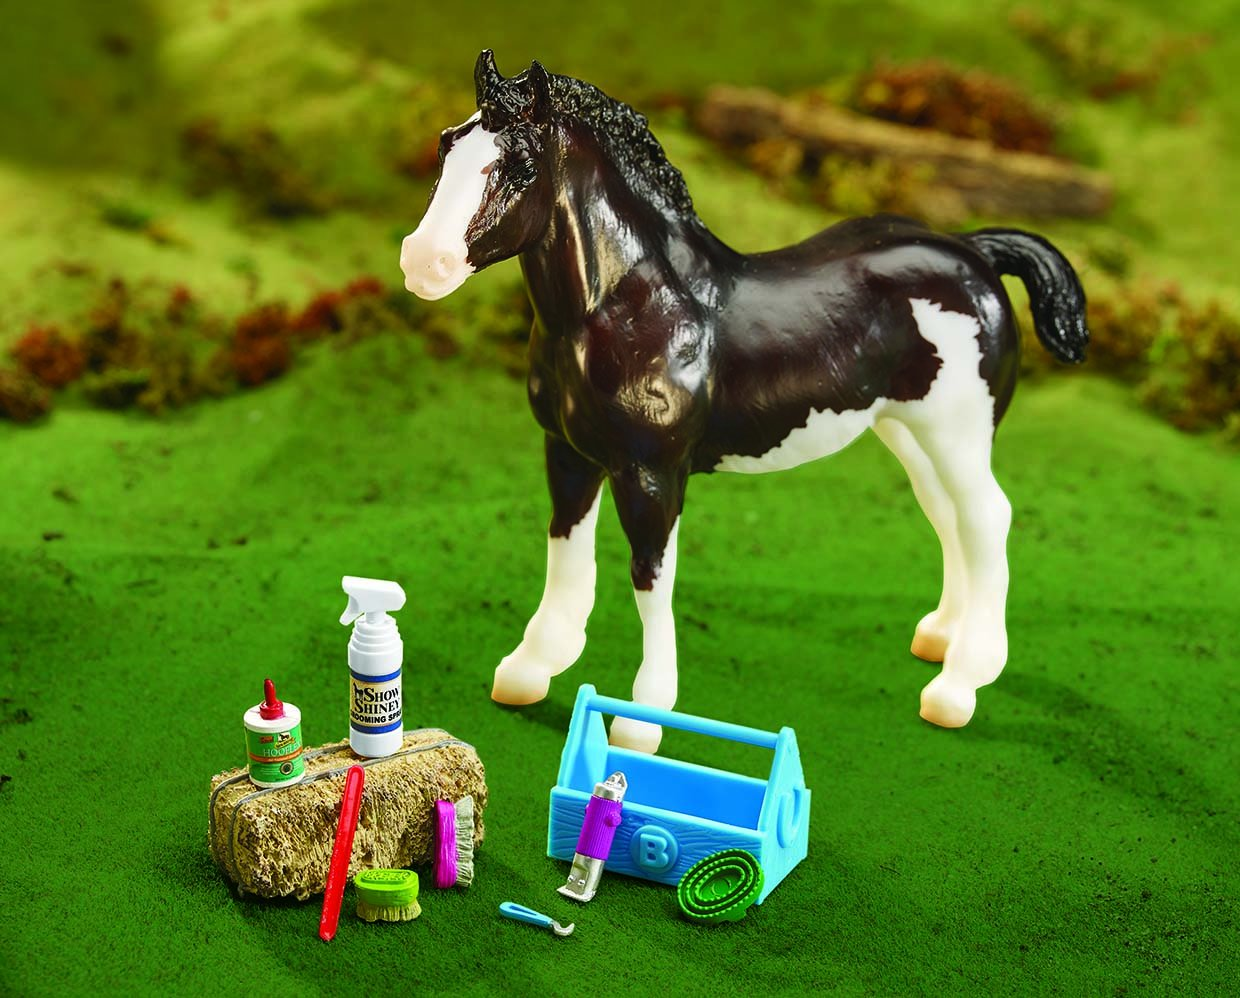 Breyer Traditional Horse Series #2075 Grooming Kit - New Factory Sealed